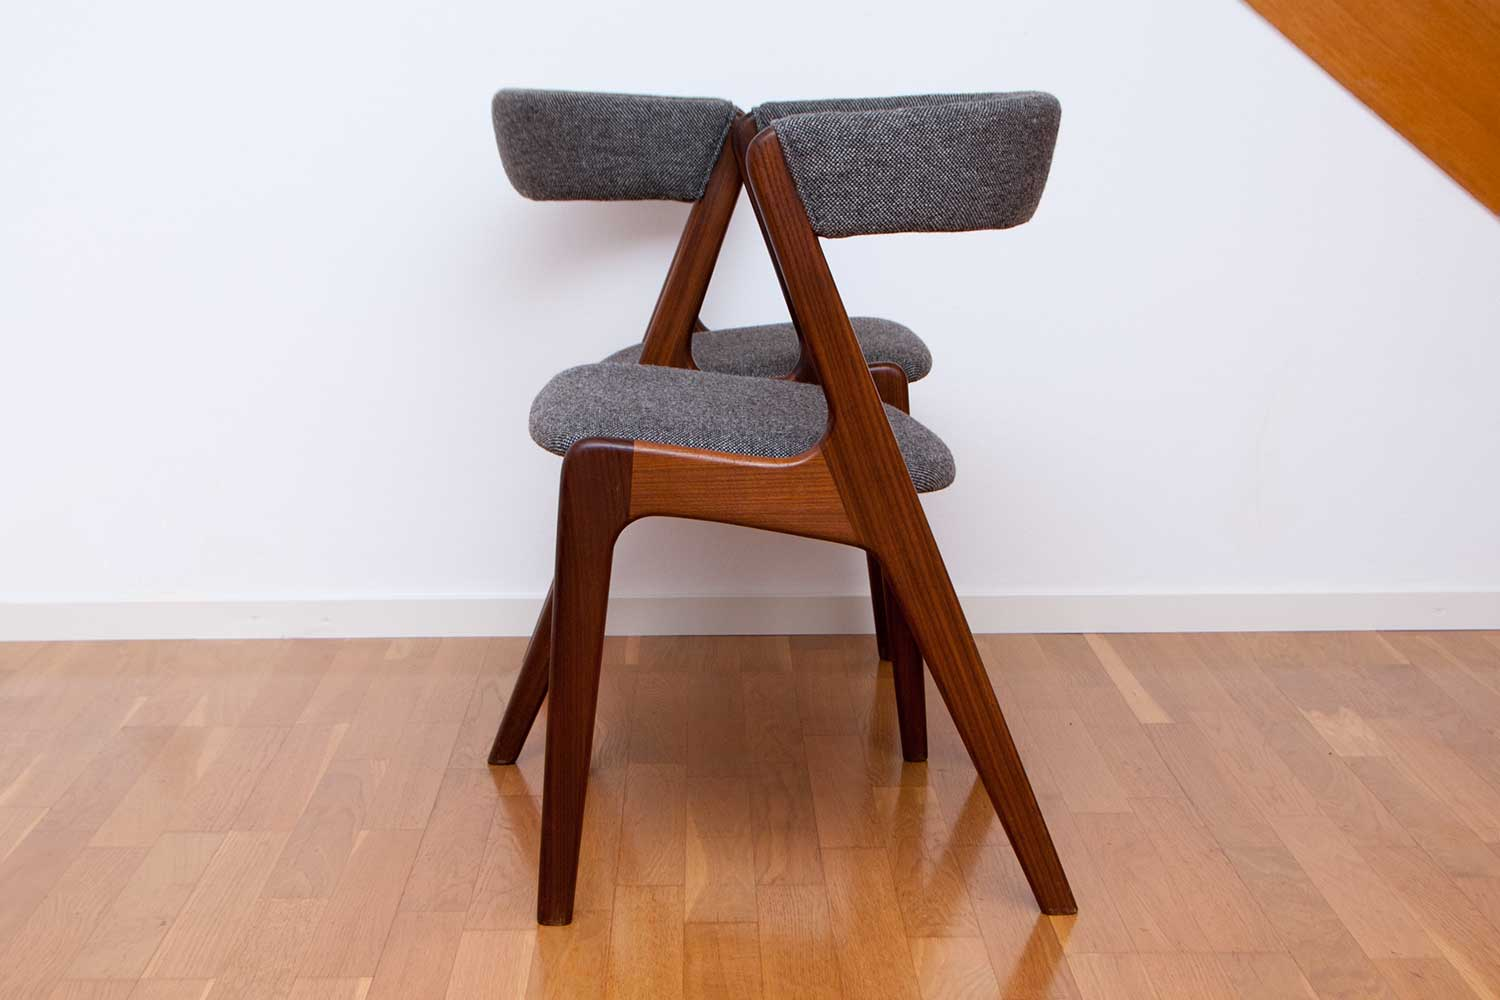 Kai Kristiansen Fire Chair Sold Scandinavian Design